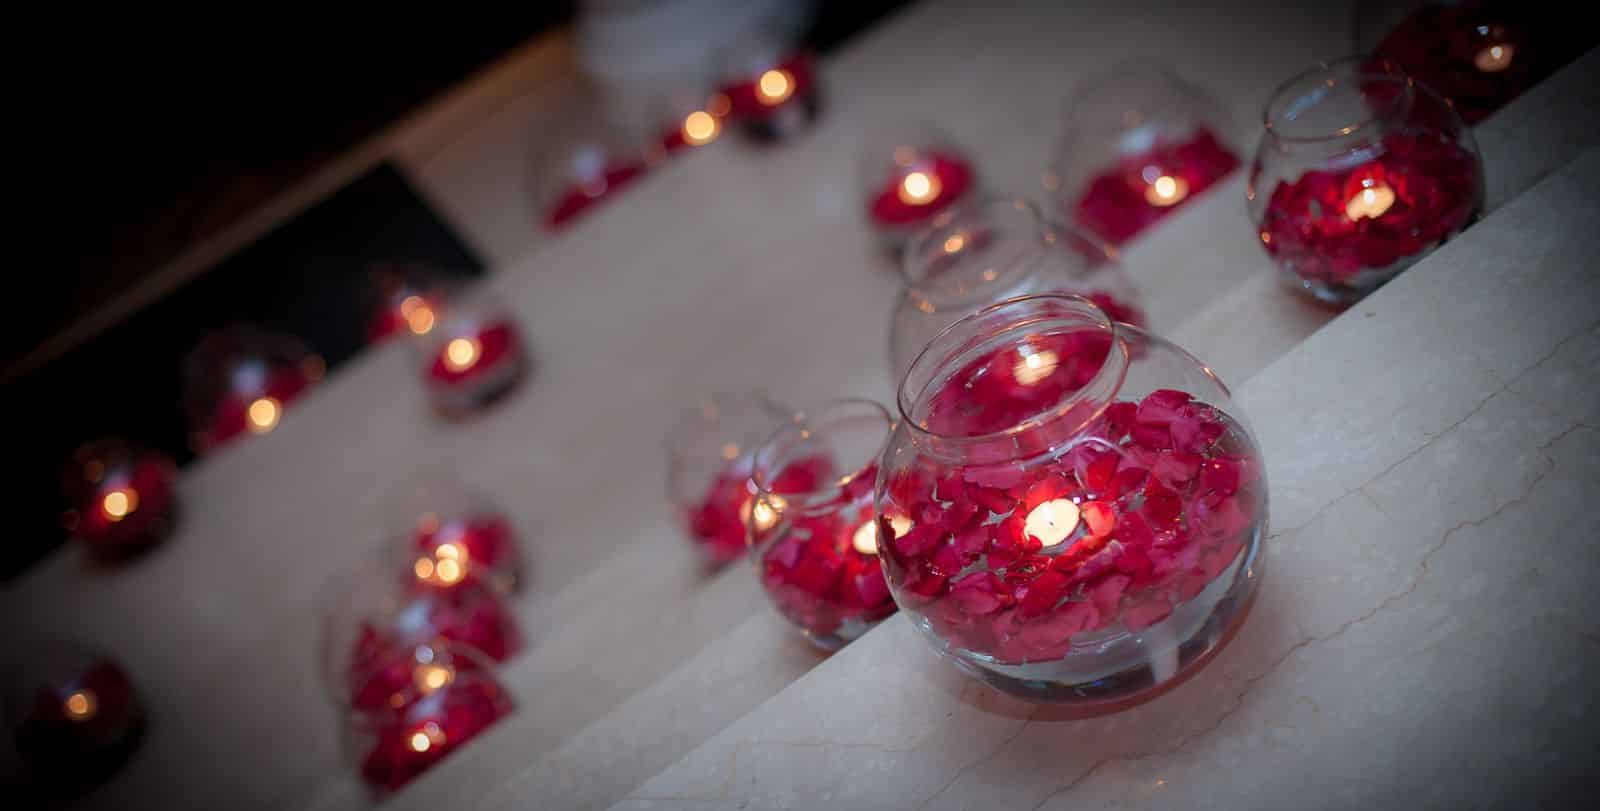 candid-wedding-photography-taj-westend-candles